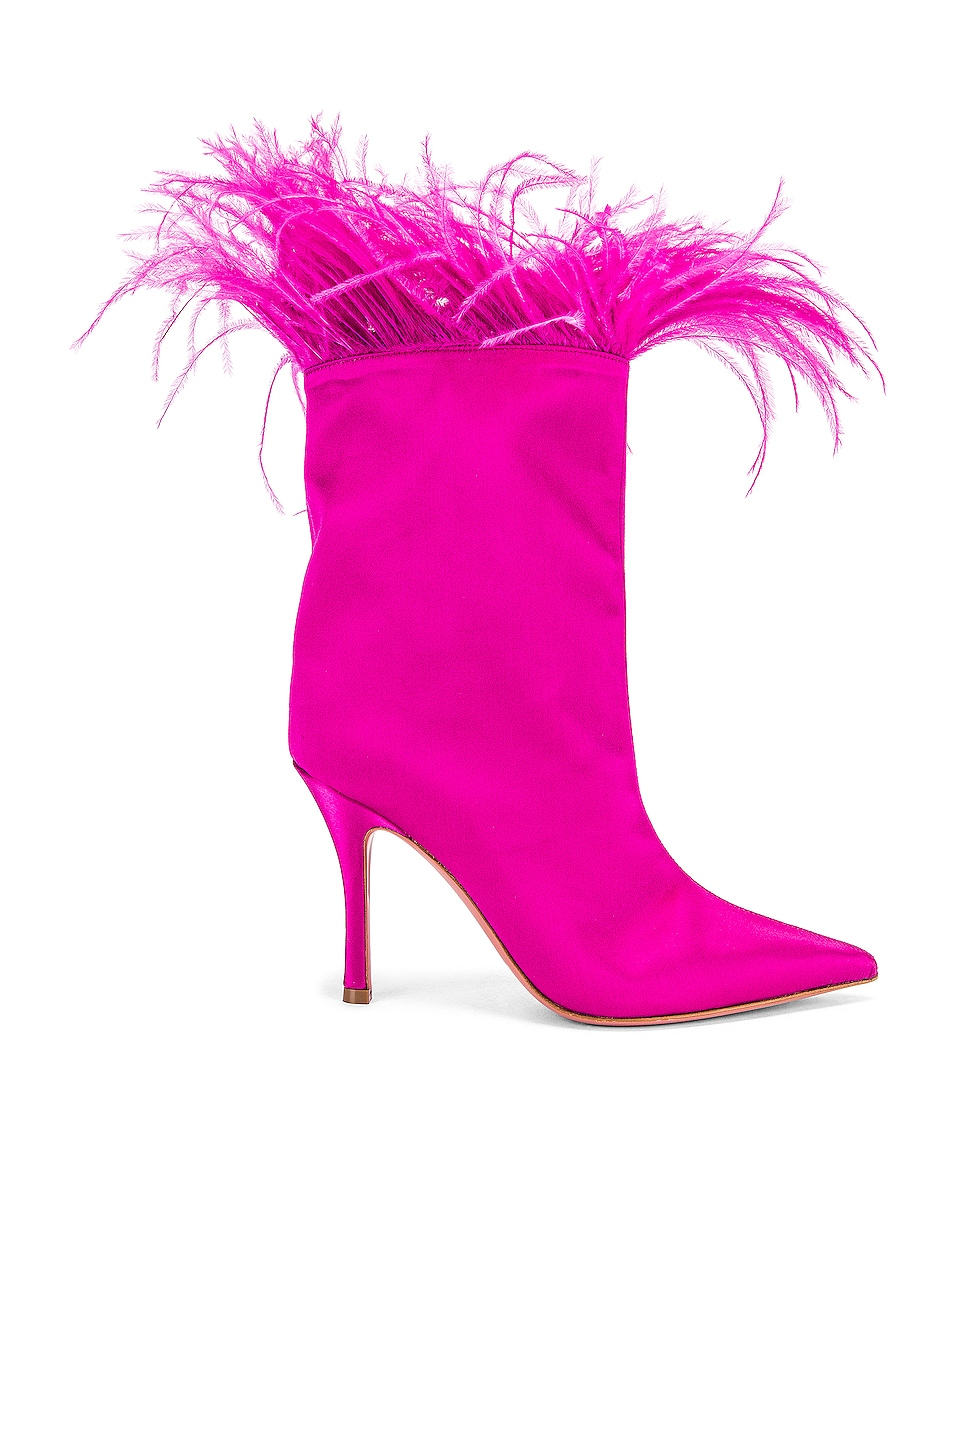 Image 1 of AMINA MUADDI Nakia Plume Satin Boot in Fuchsia Satin